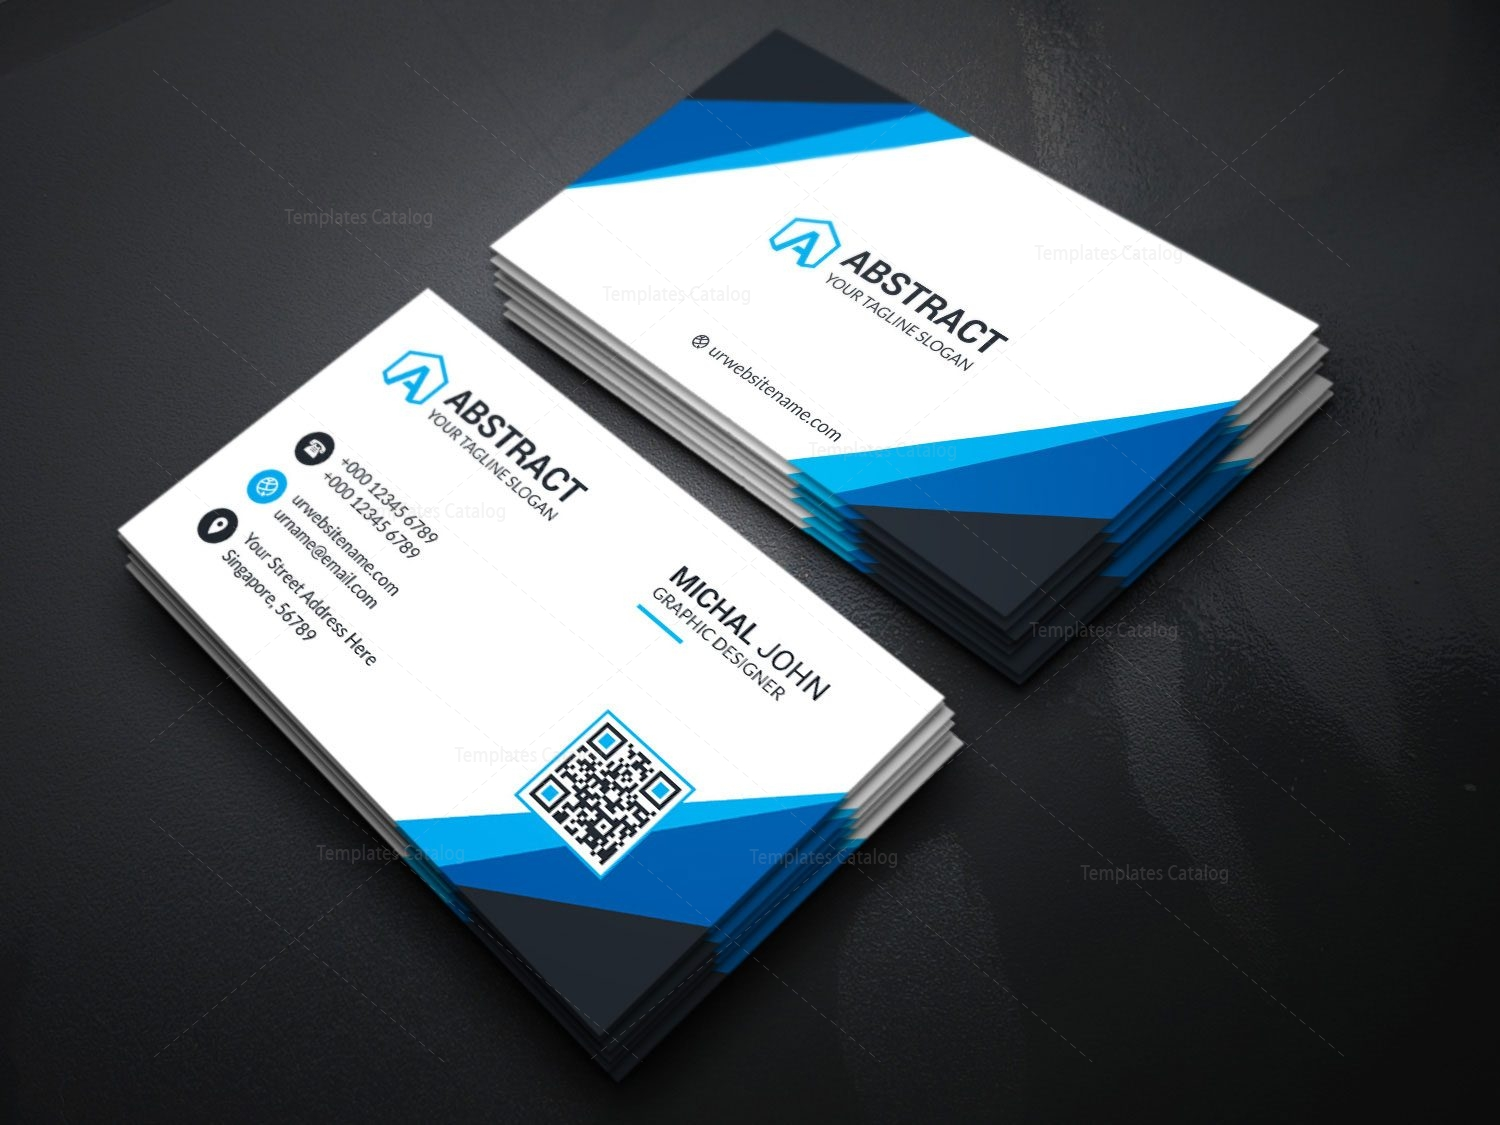 Visiting card template for companies 000175 template catalog visiting card template for companies 4 fbccfo Gallery